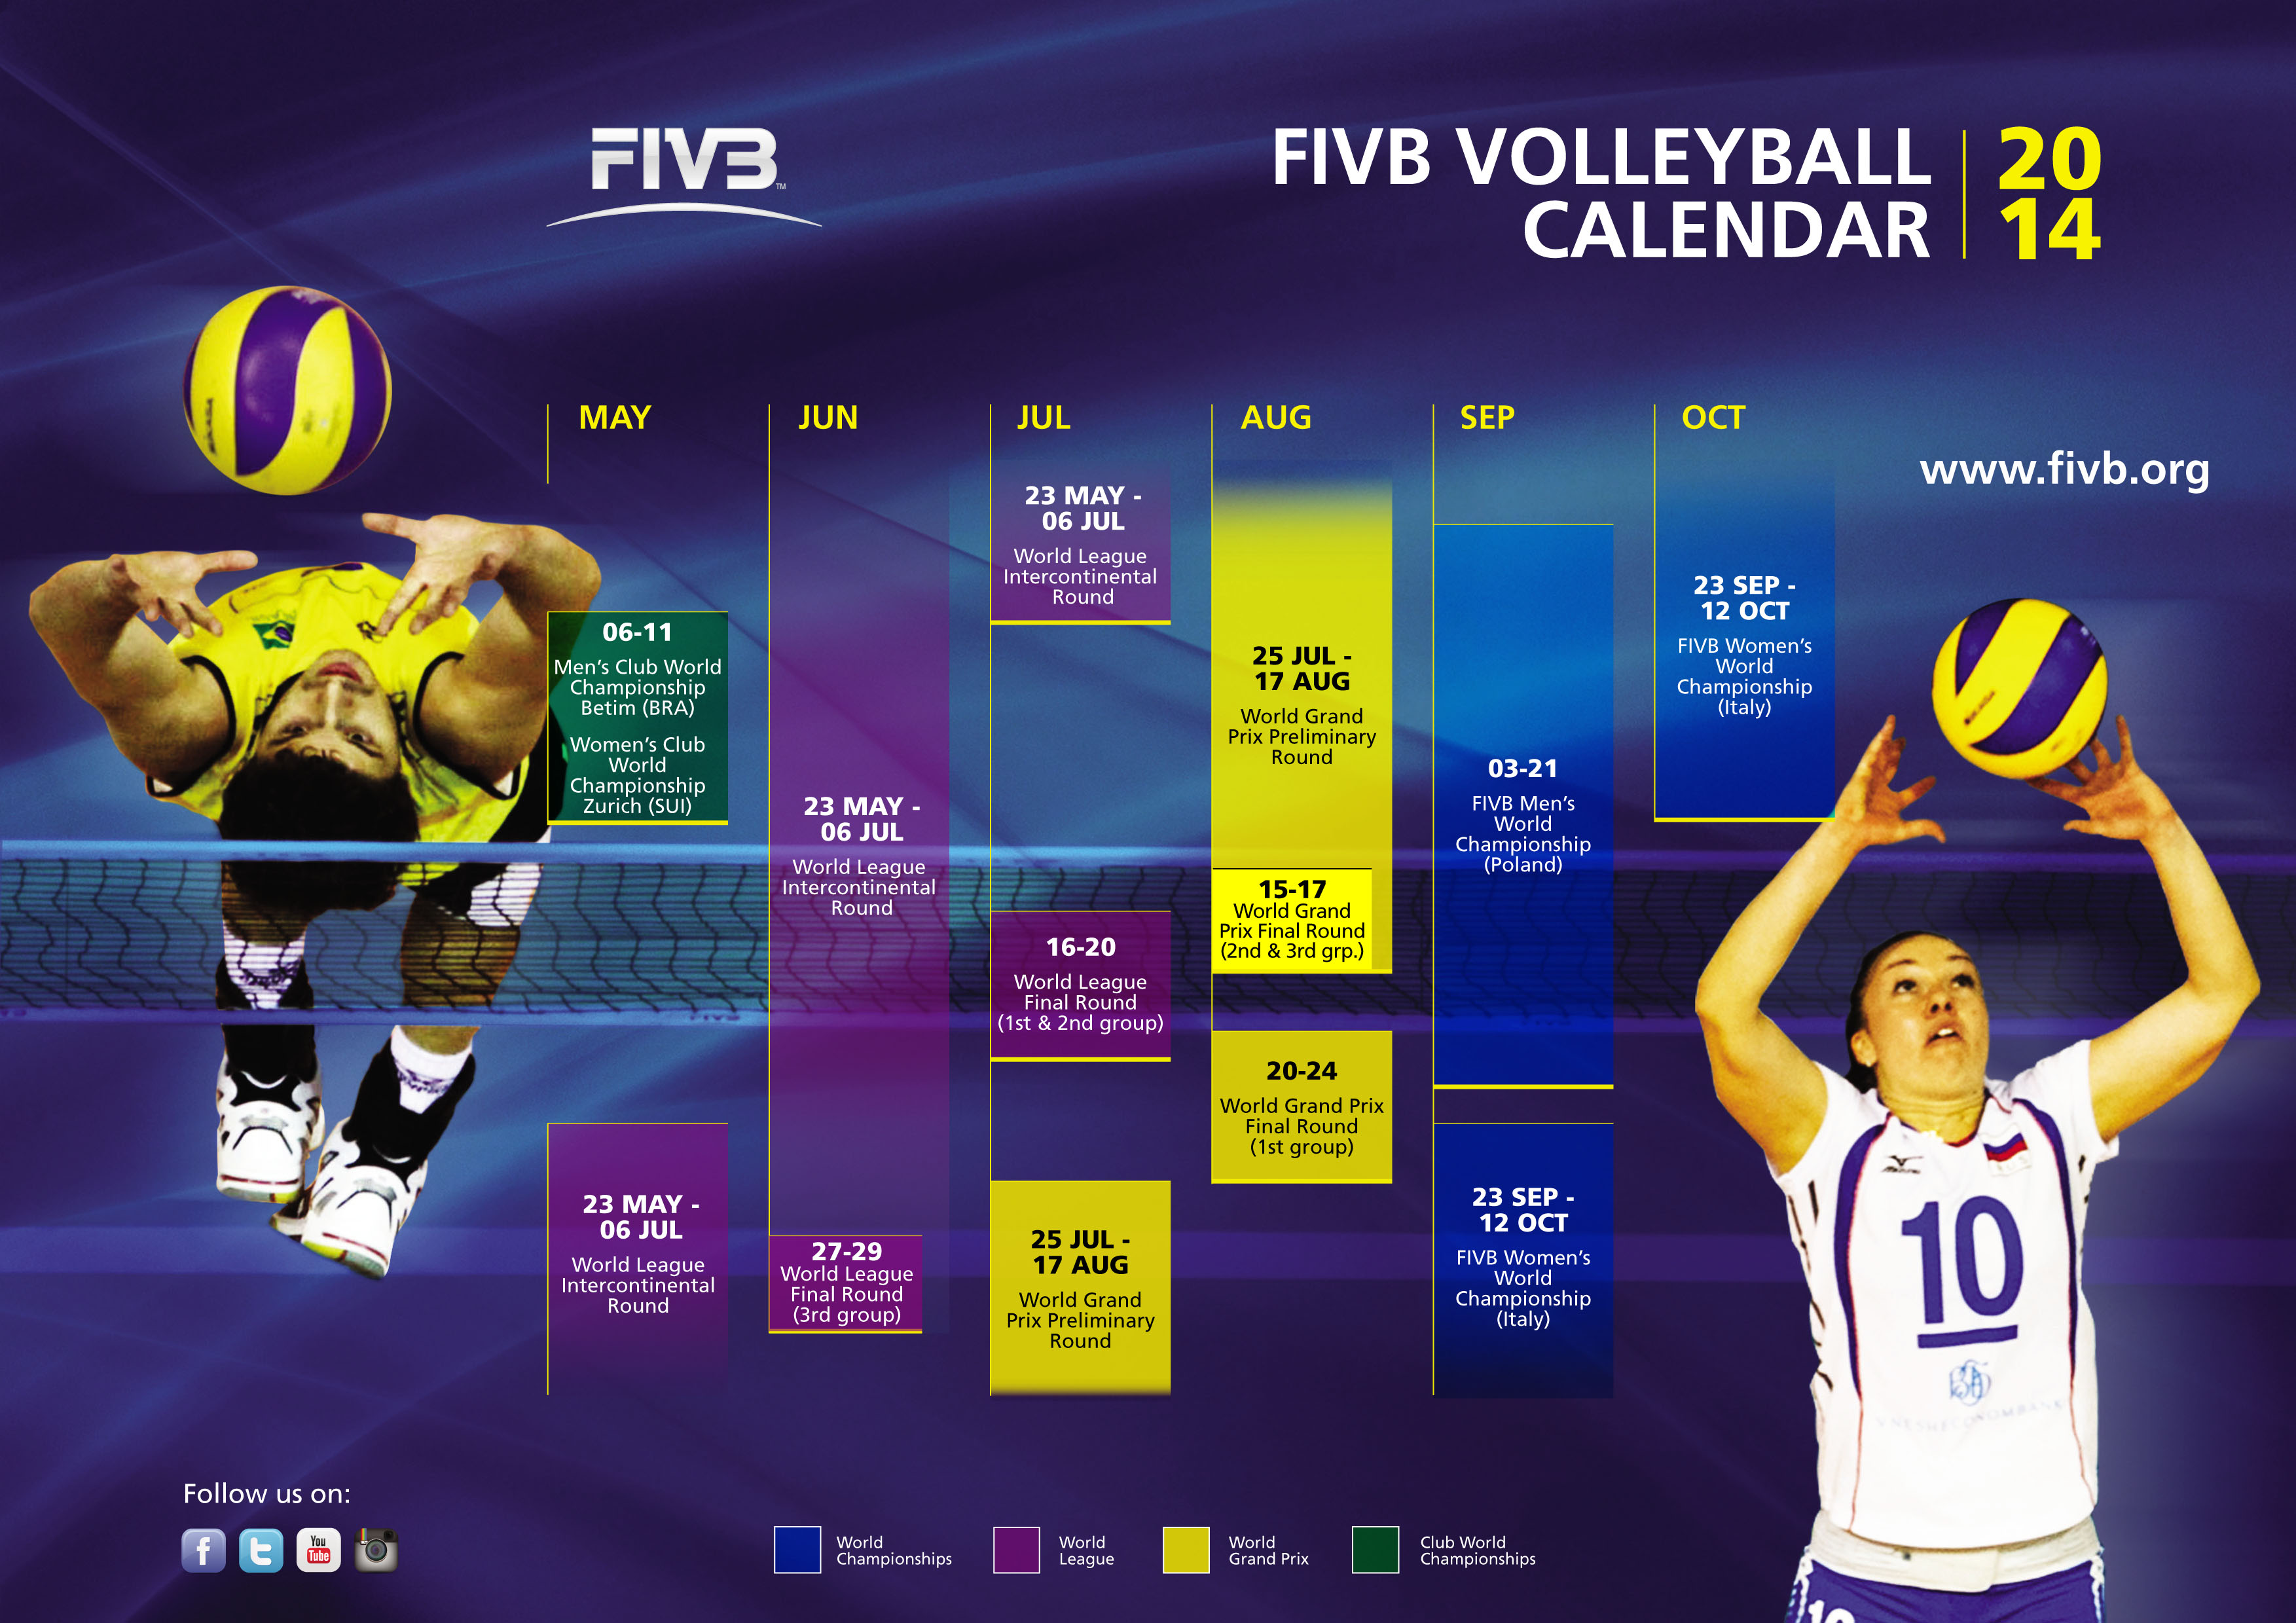 http://s5.picofile.com/file/8106577626/FIVB_Volleyball_Calendar_2014.jpg